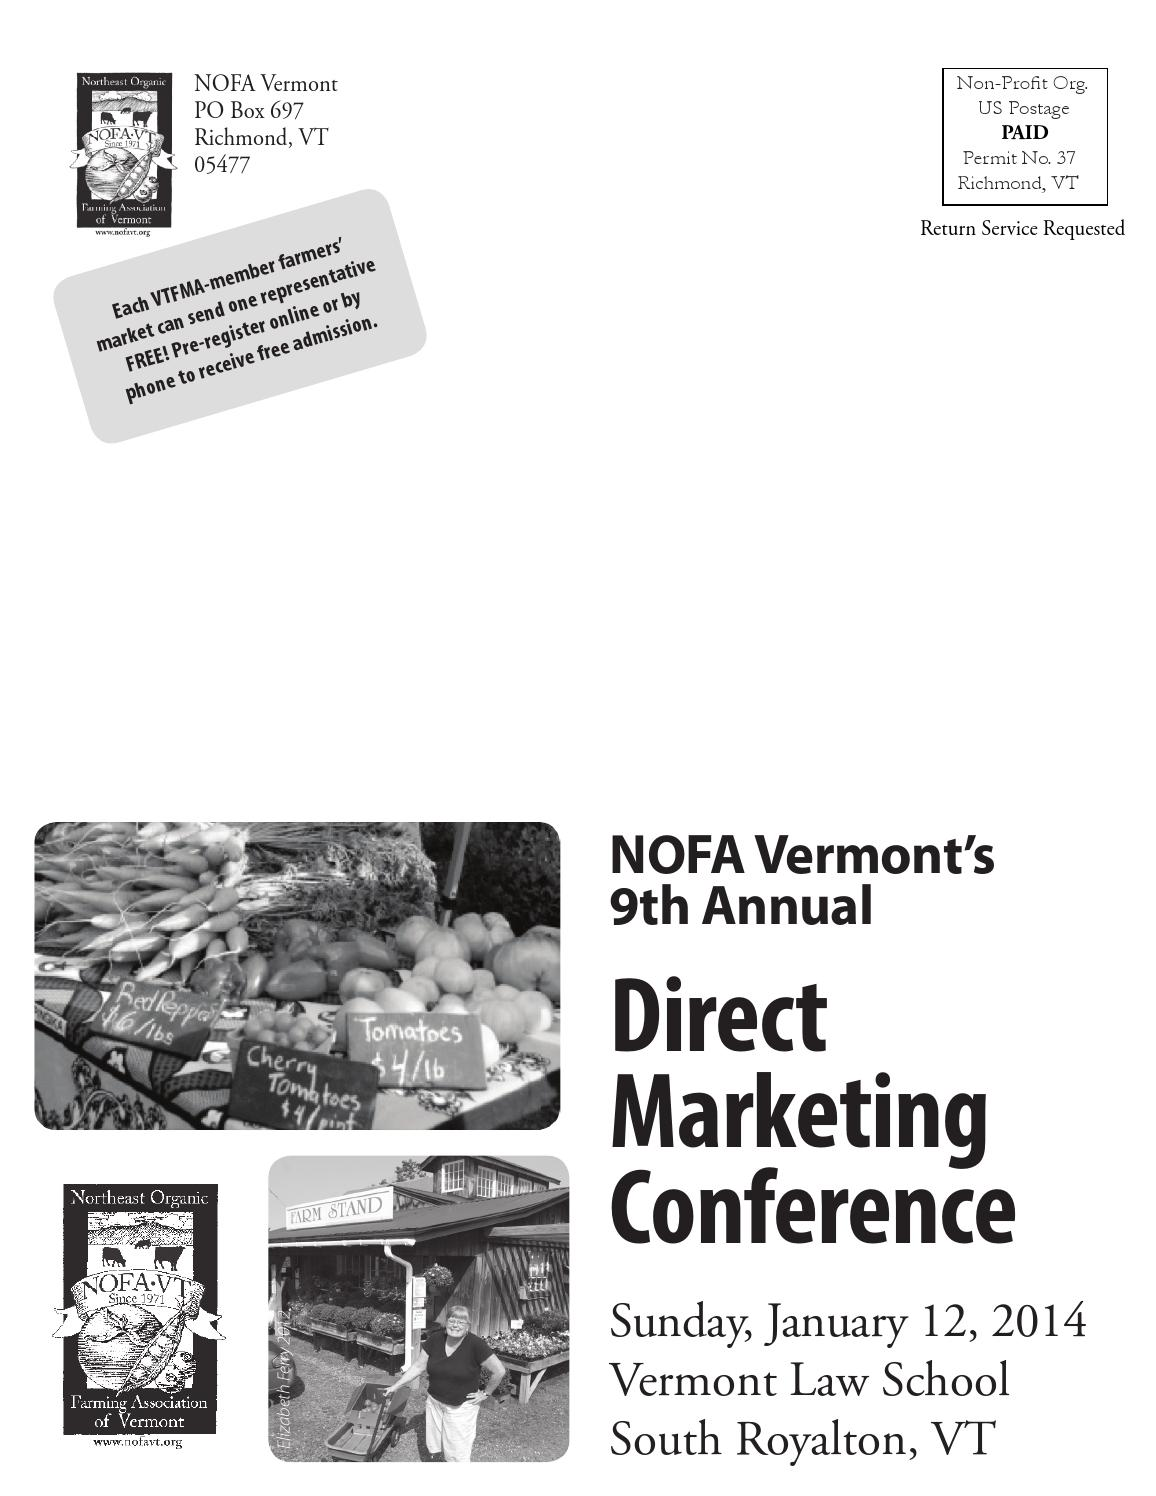 NOFA Vermont 2014 Direct Marketing Conference by NOFA